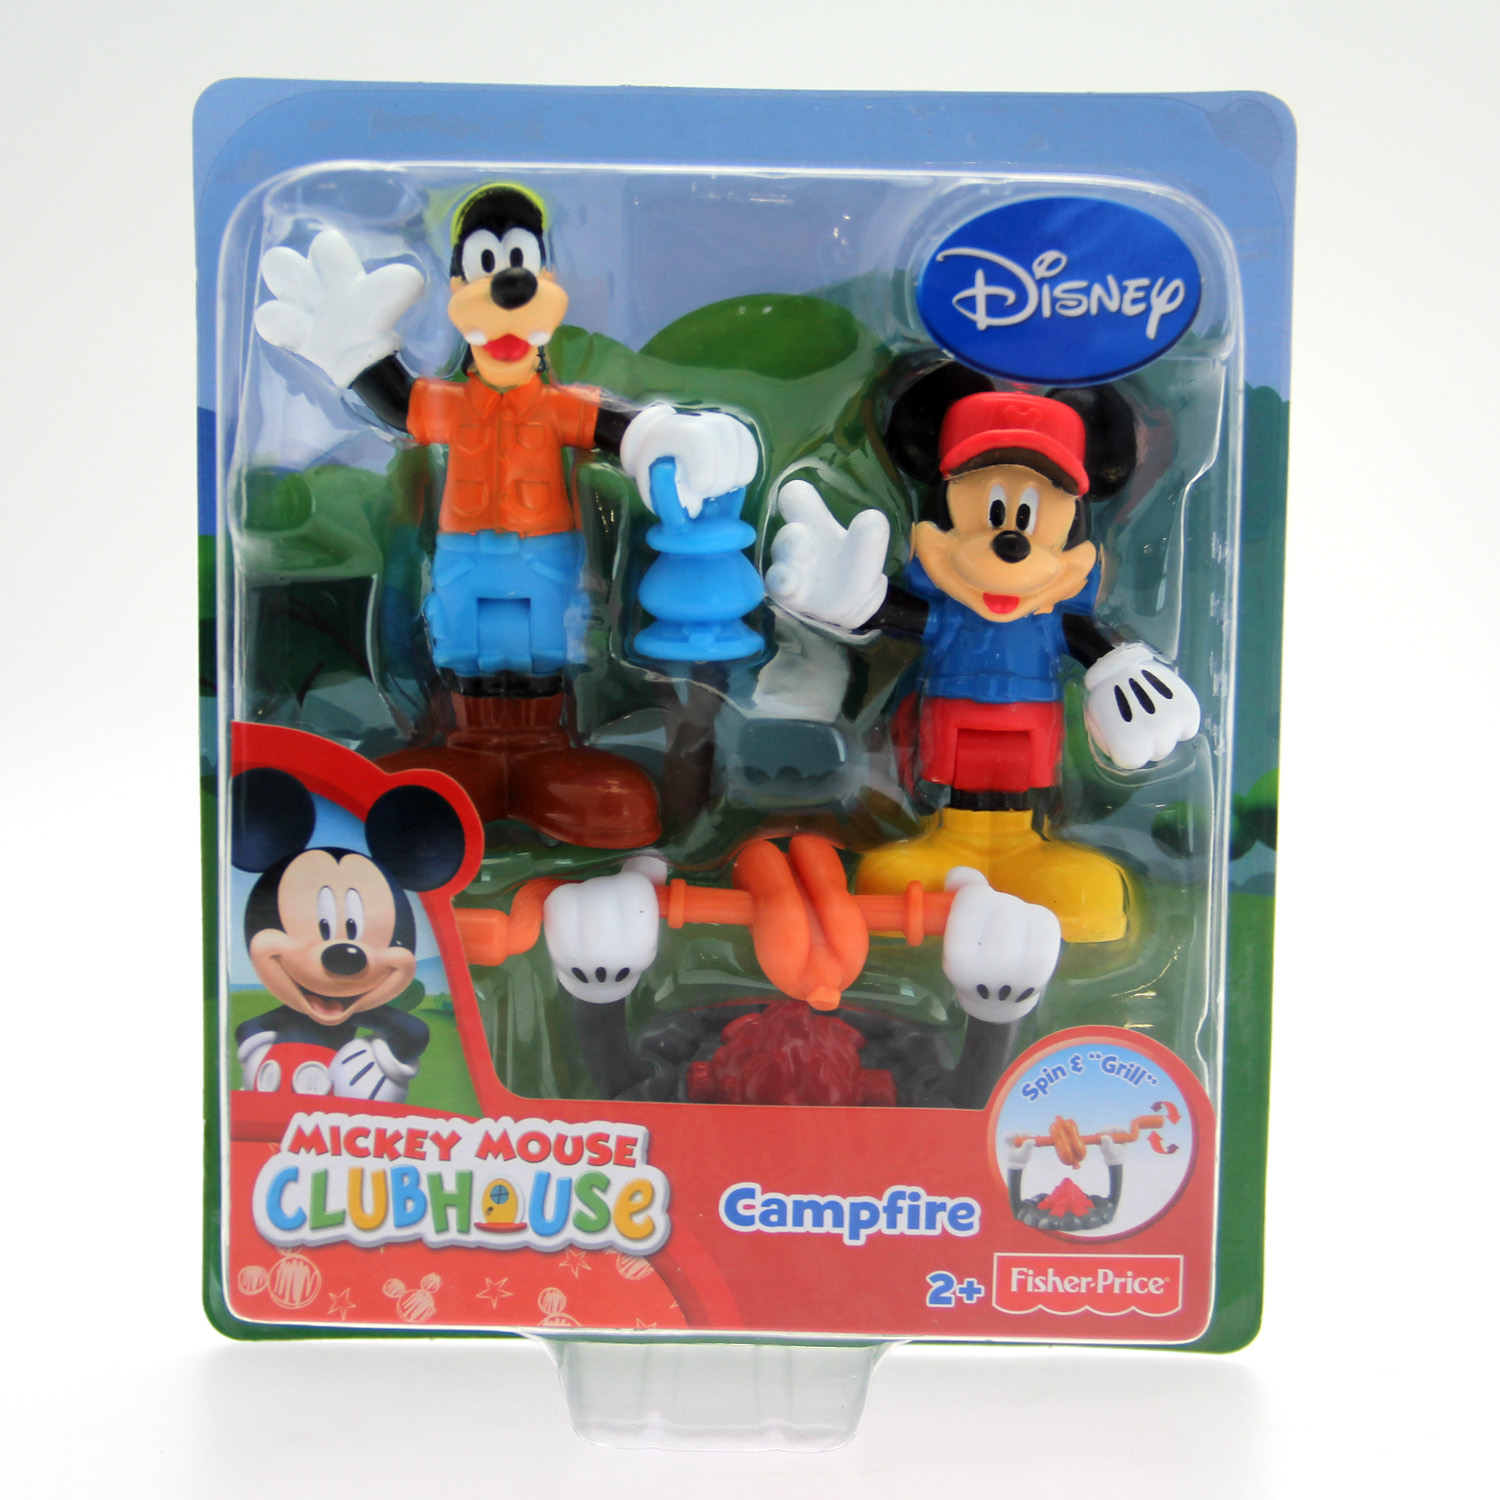 mickey mouse clubhouse bedroom set.  Mickey Mouse Clubhouse Toys and Goofy Campfire Set at ToyStop